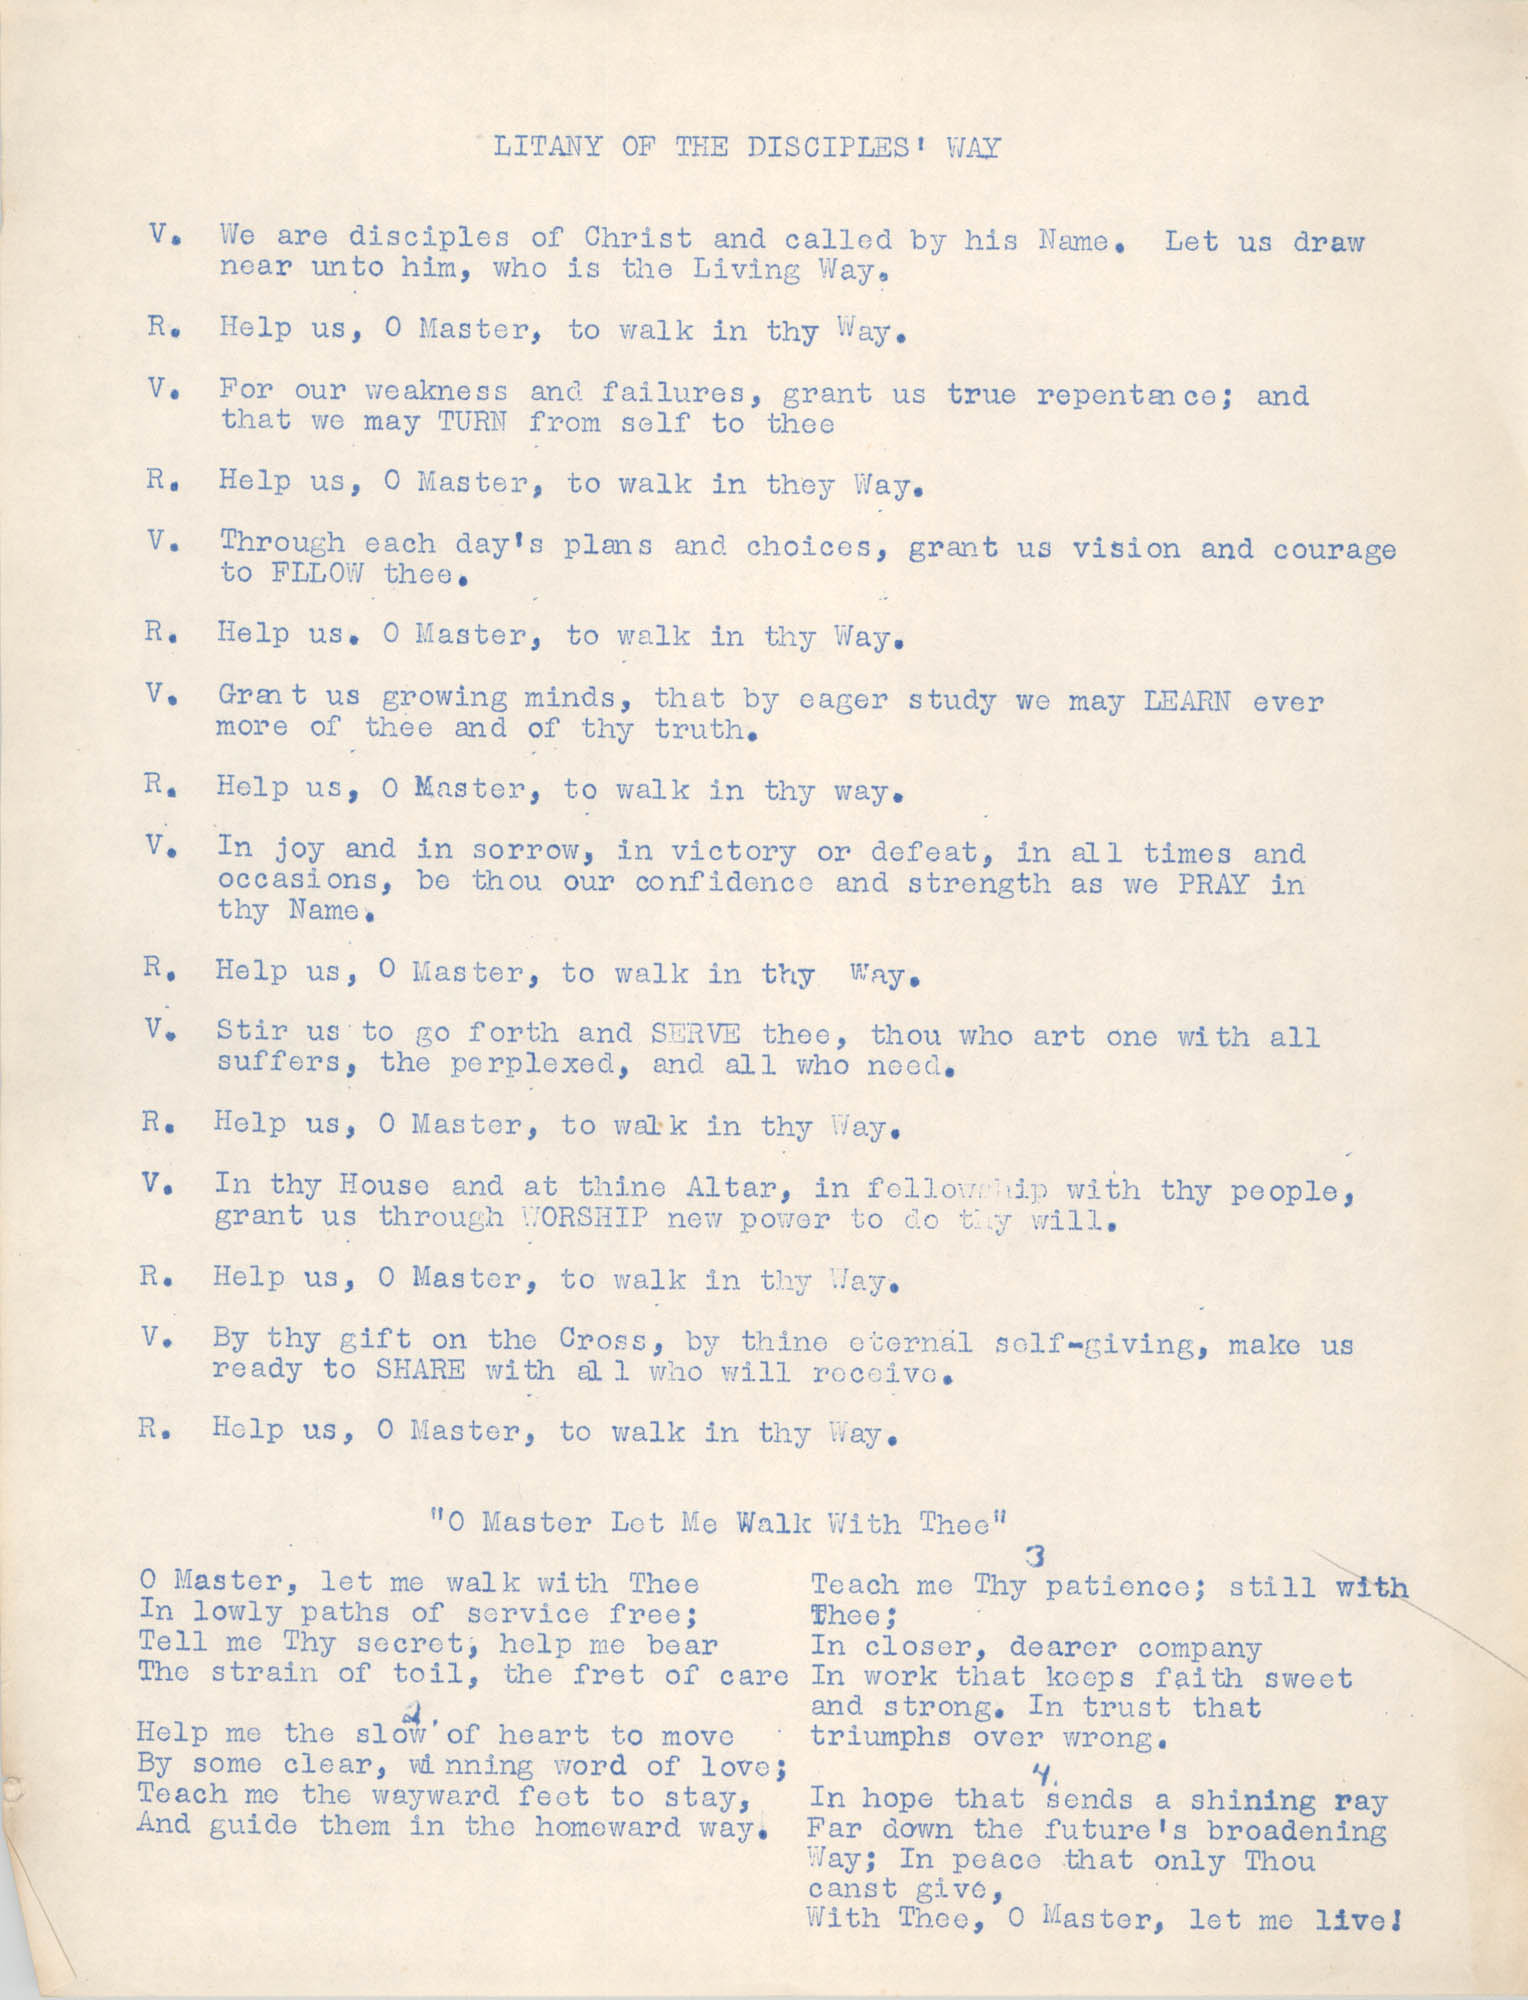 Coming Street Y.W.C.A. Scrapbook, 1953-1957, Page 182